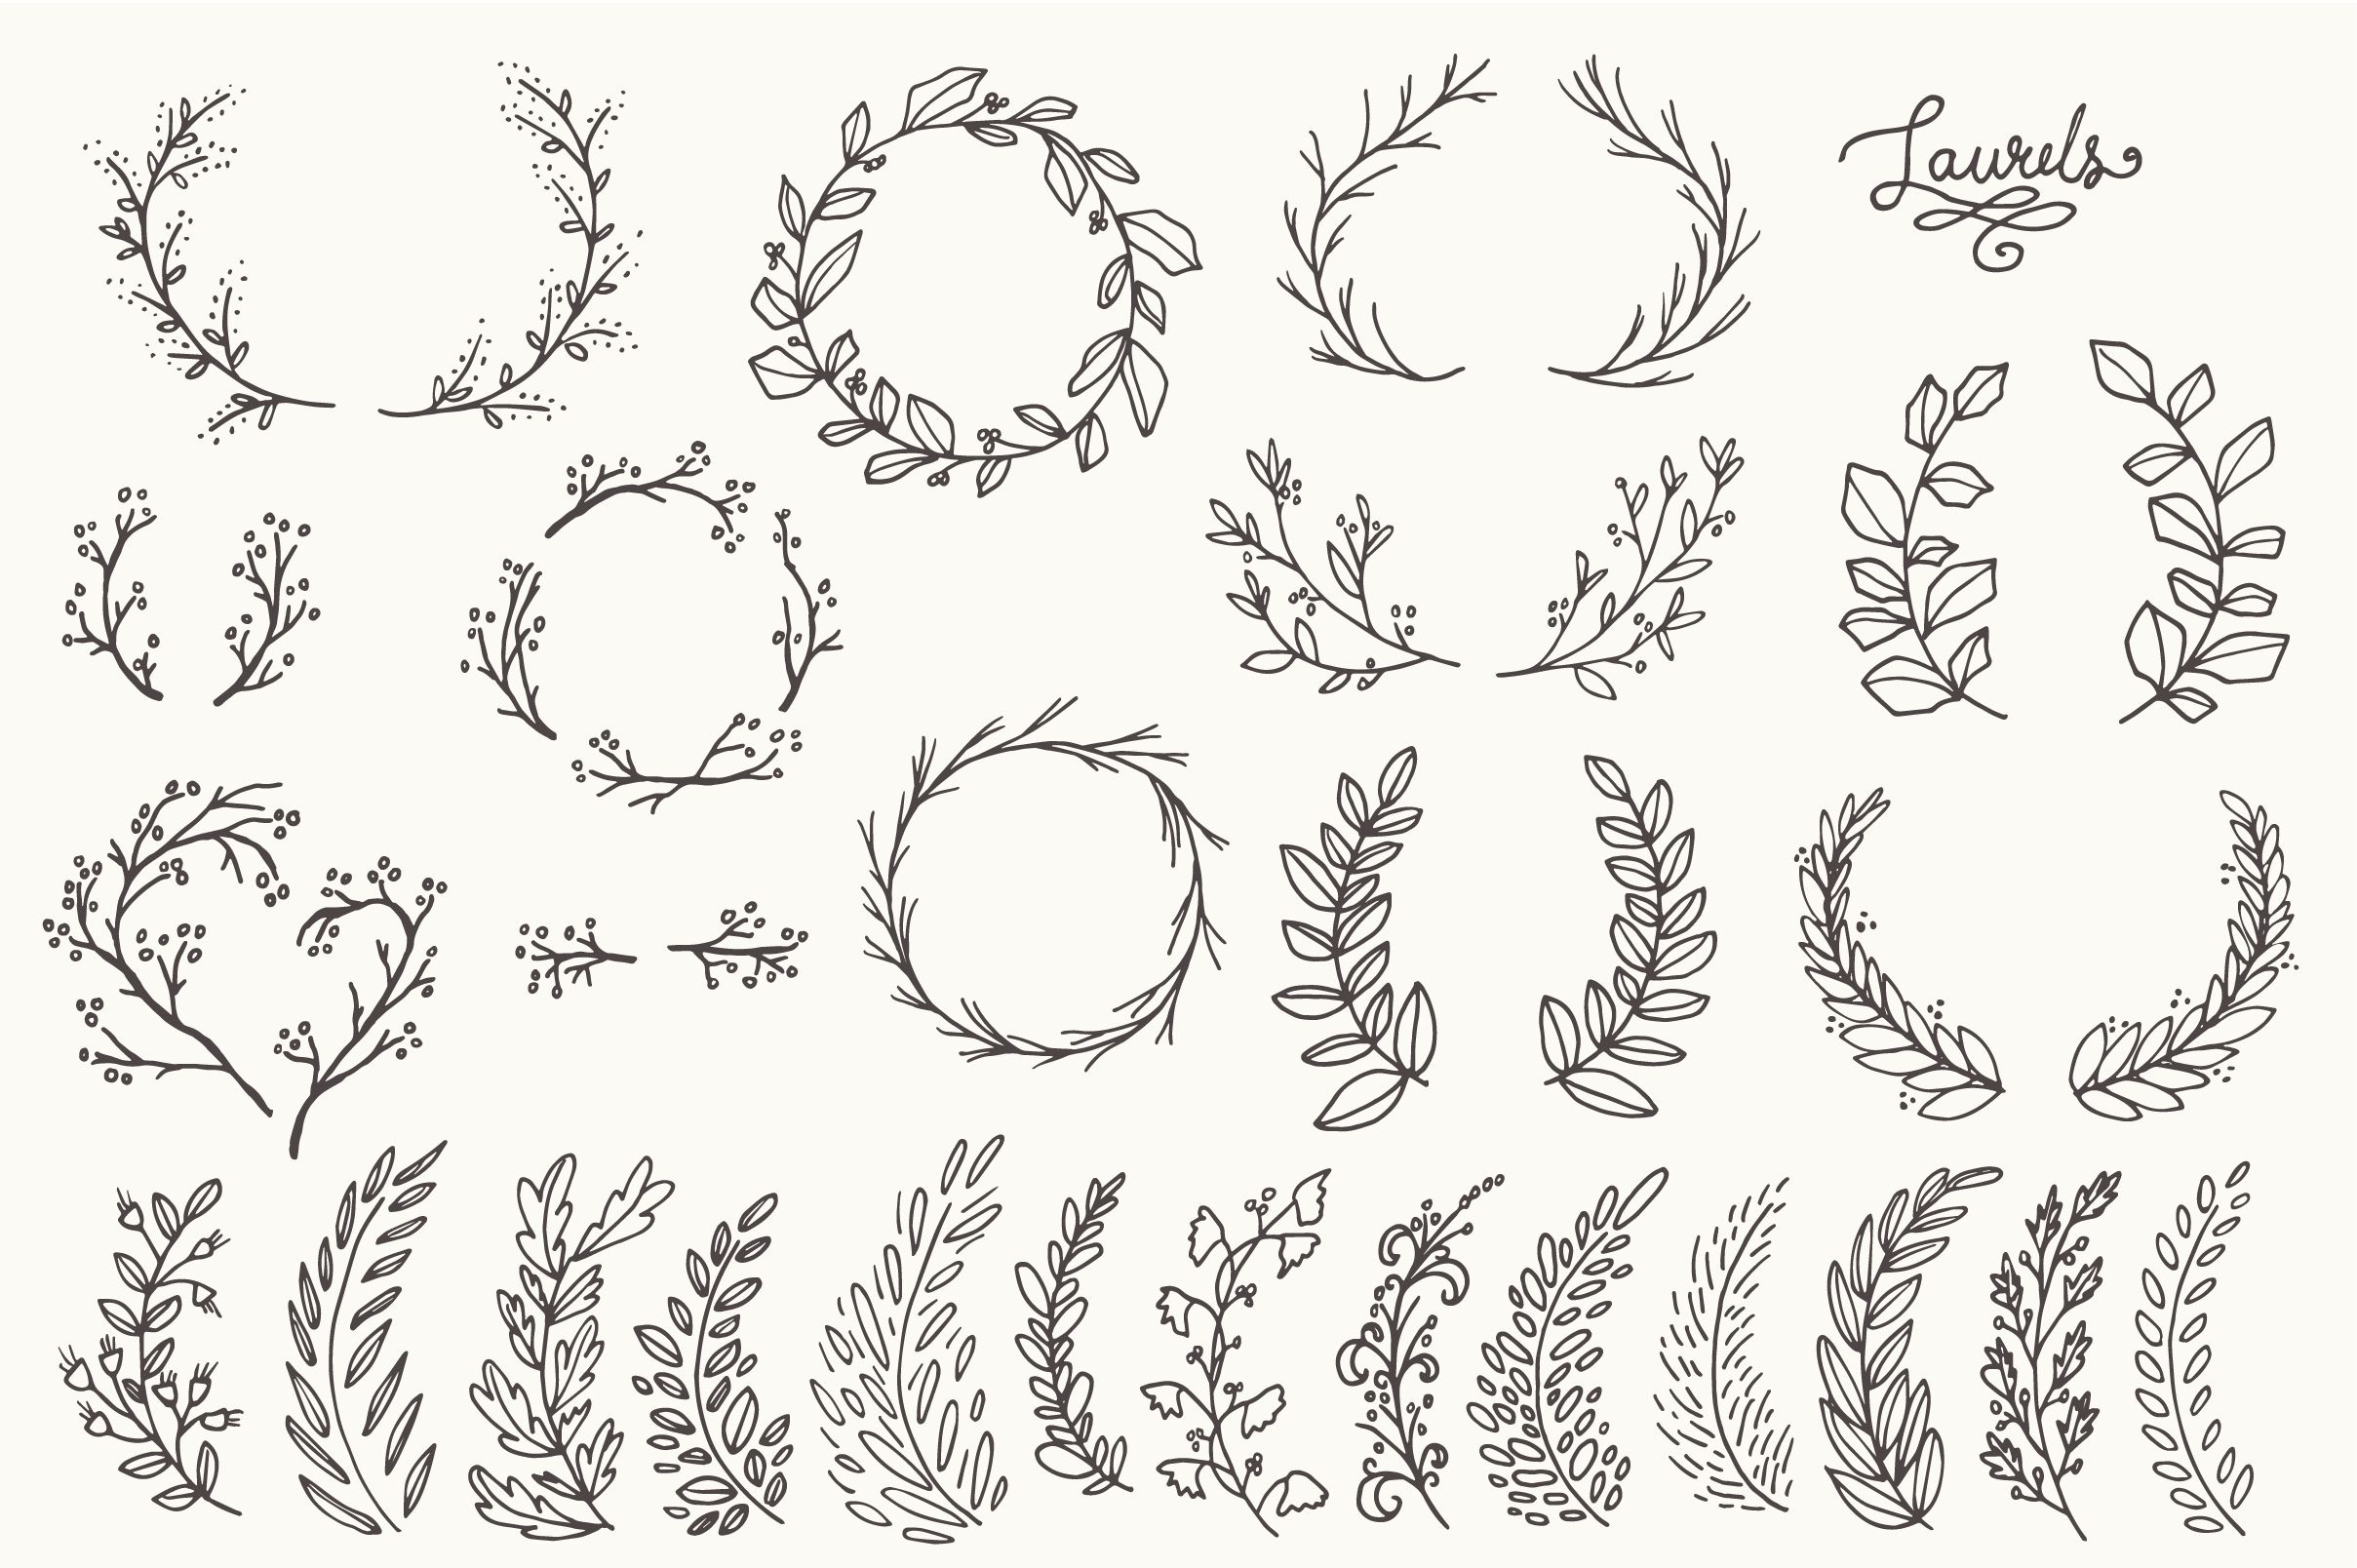 Whimsical Laurels Amp Wreaths Clip Art By The Pen Amp Brush On